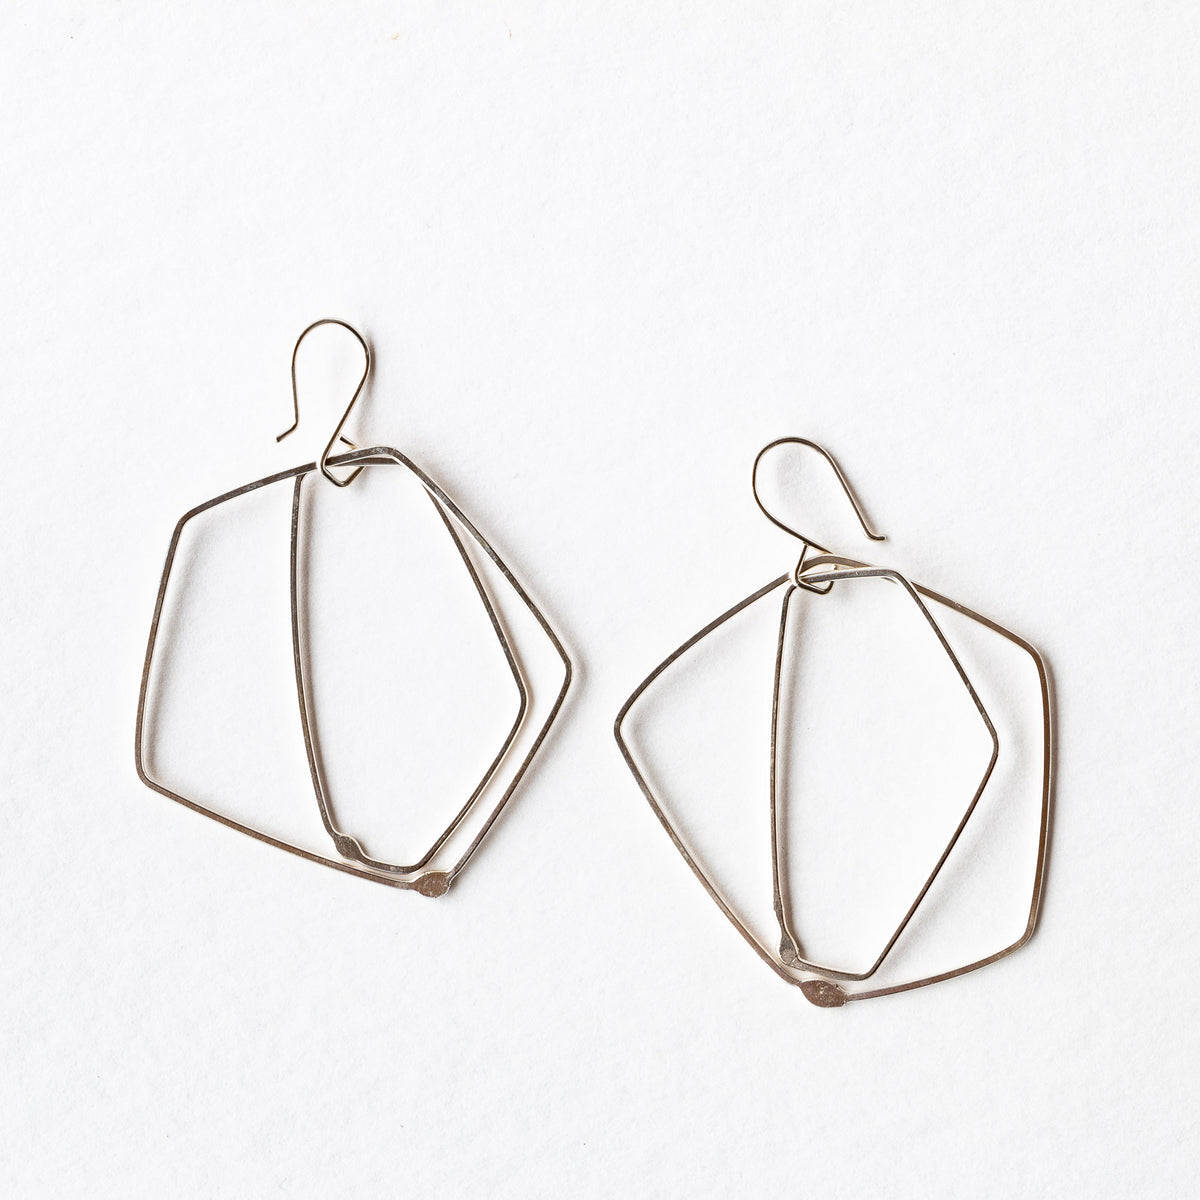 Sterling Silver Minimalist Earrings - ES02 - Sold by Chic & Basta